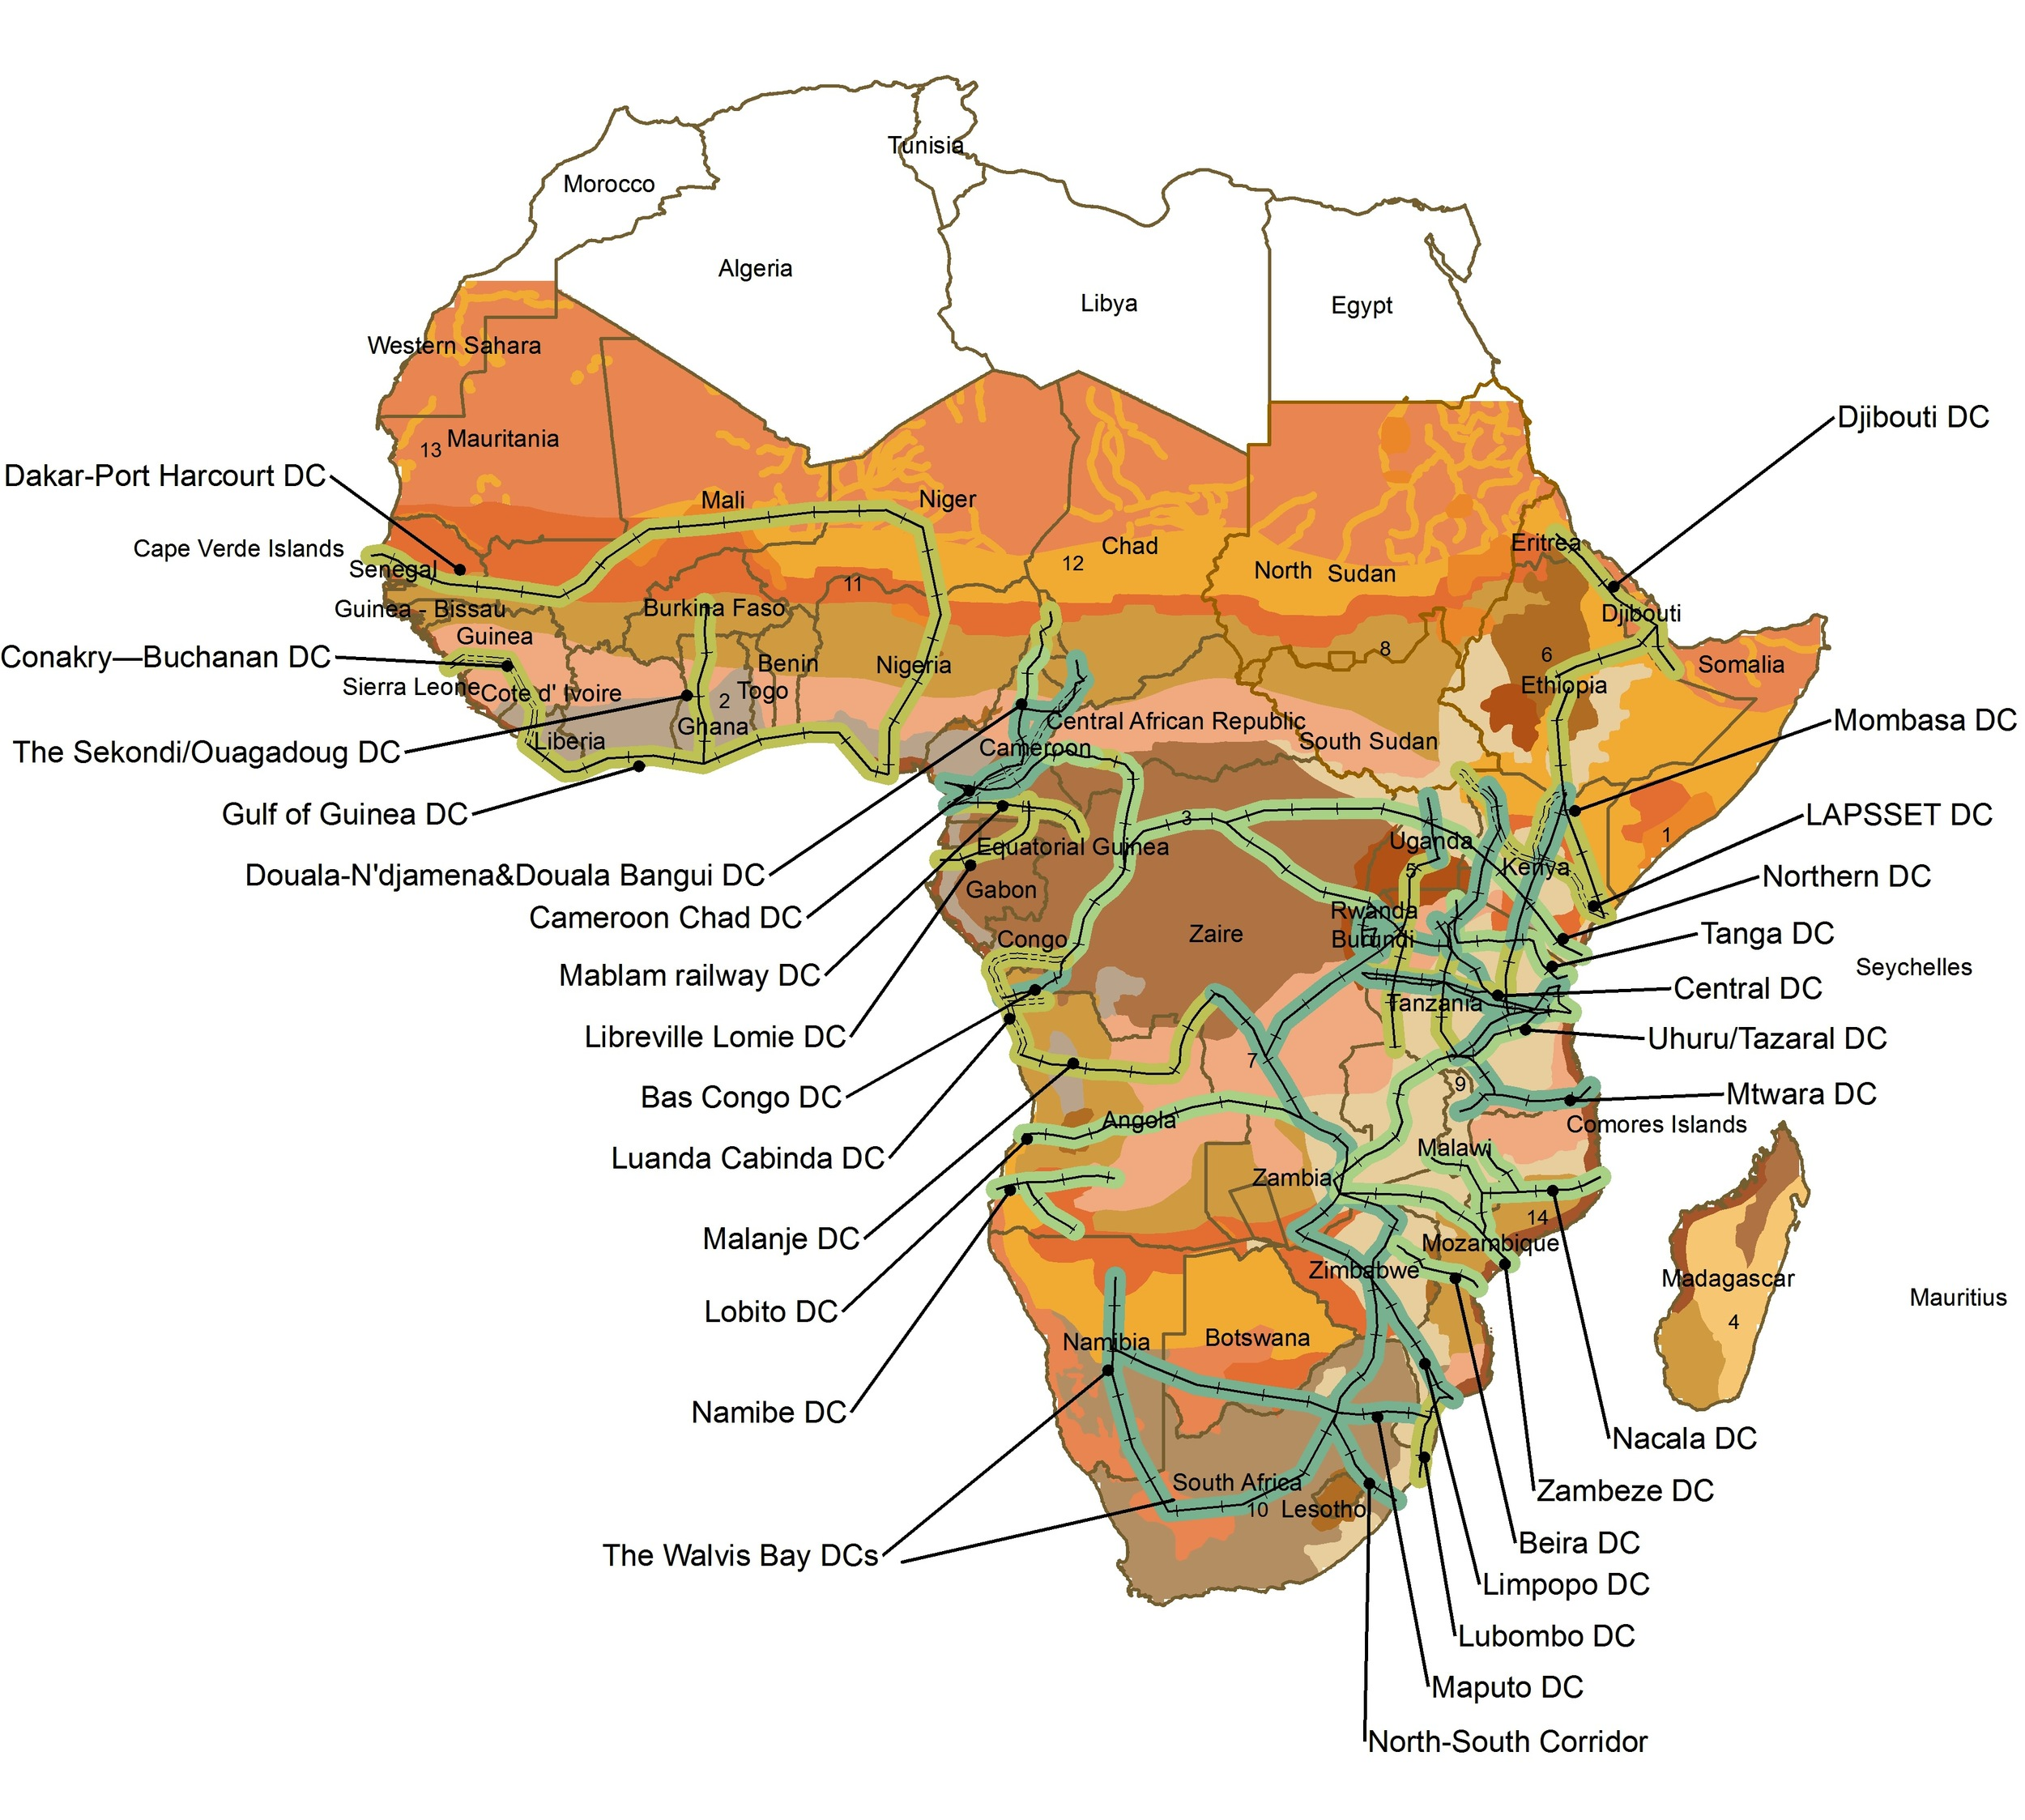 """Development corridors"" driven by mining could open up Africa to massive exploitation."